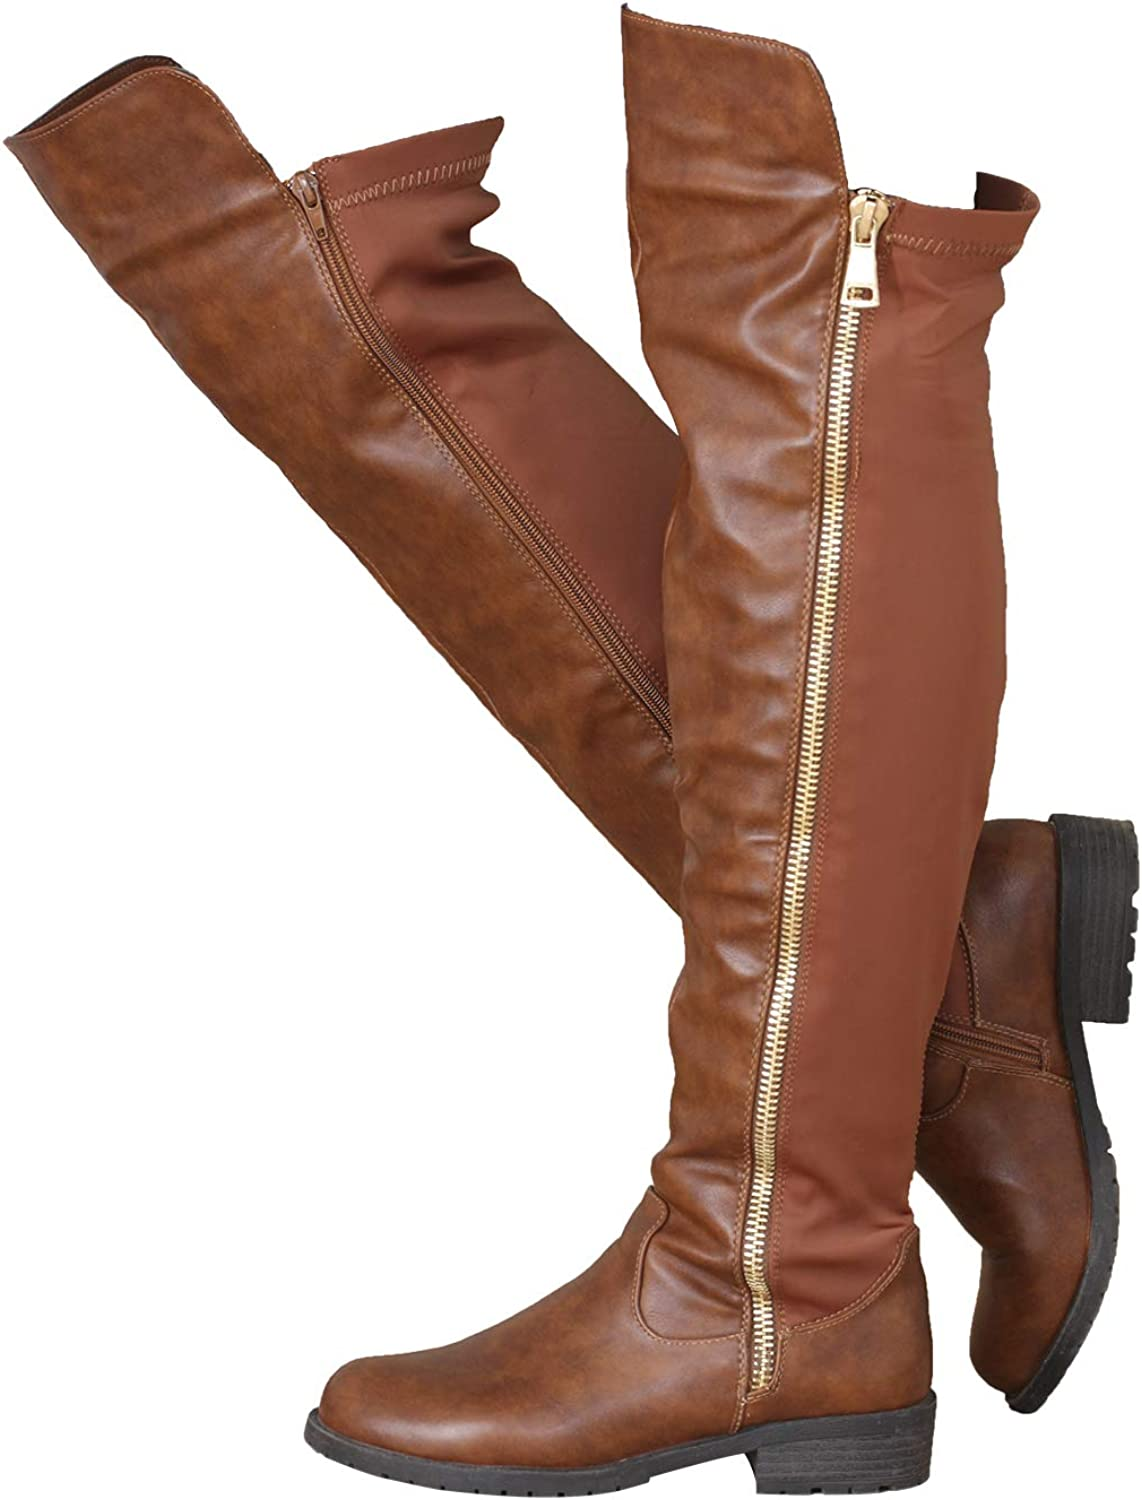 Riding Boots Over The Knee